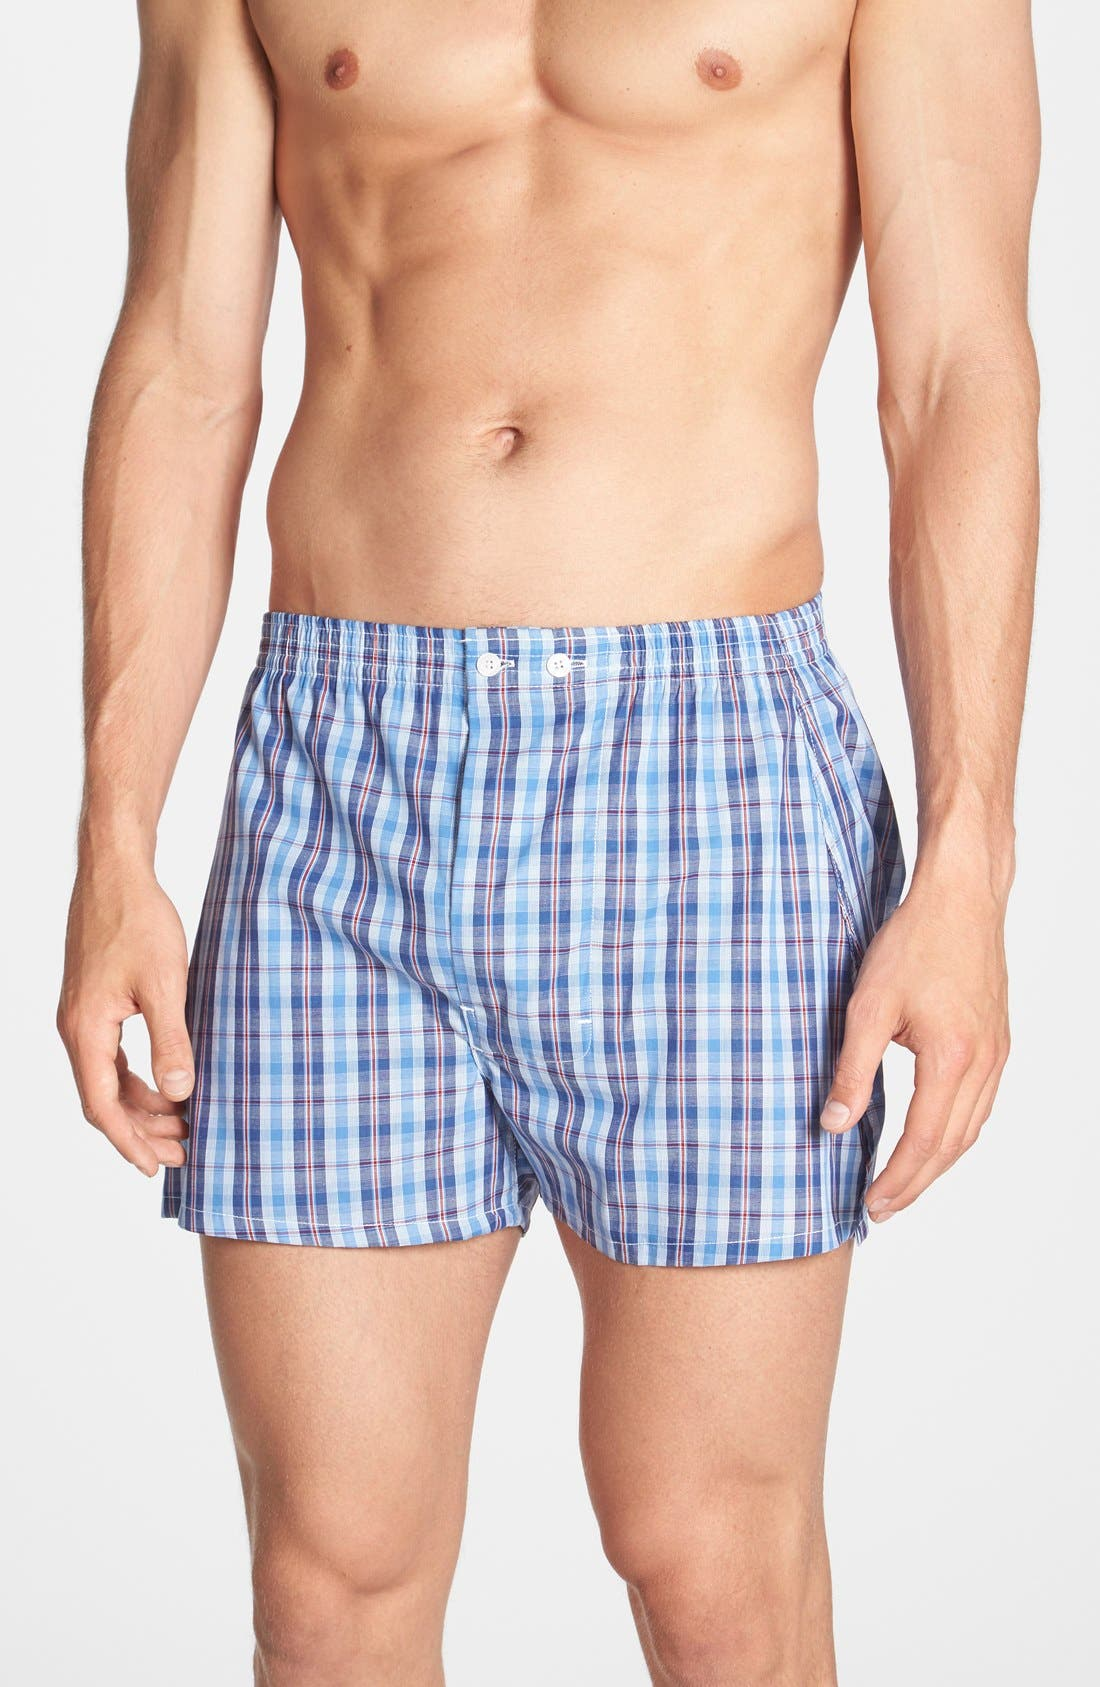 Main Image - Nordstrom Men's Shop Classic Fit Cotton Boxers (3 for $39.50)